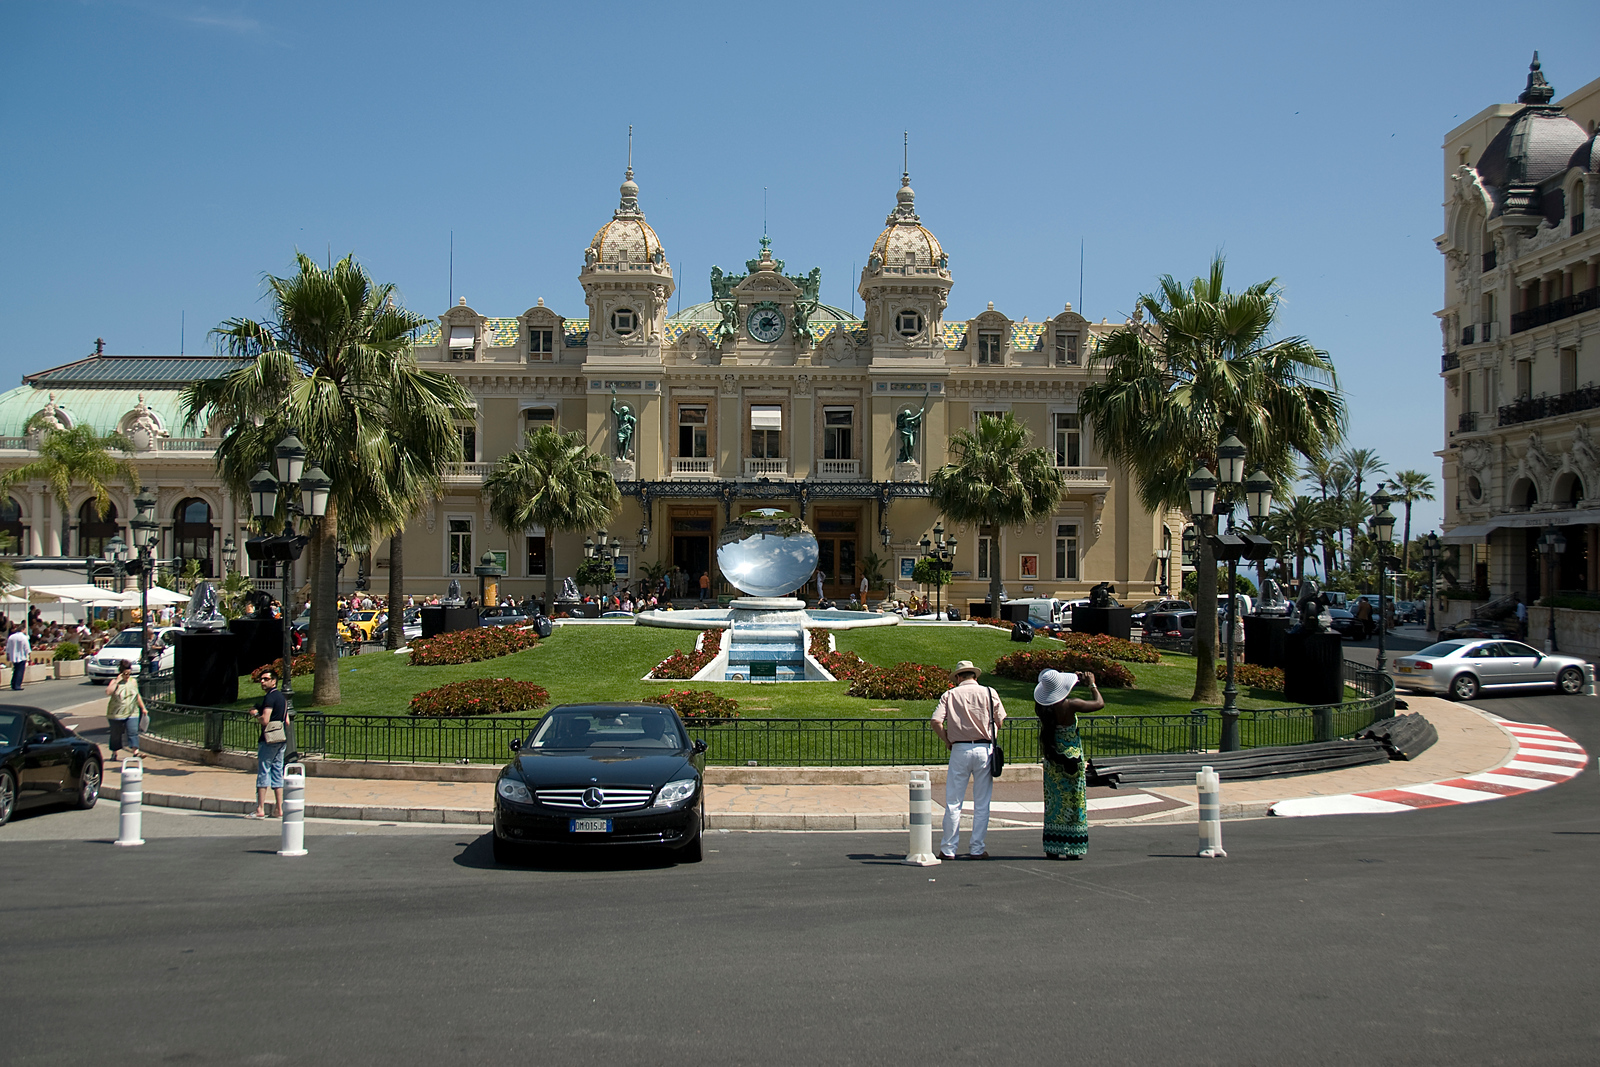 The Casino Square Garden in Monte Carlo, Monaco